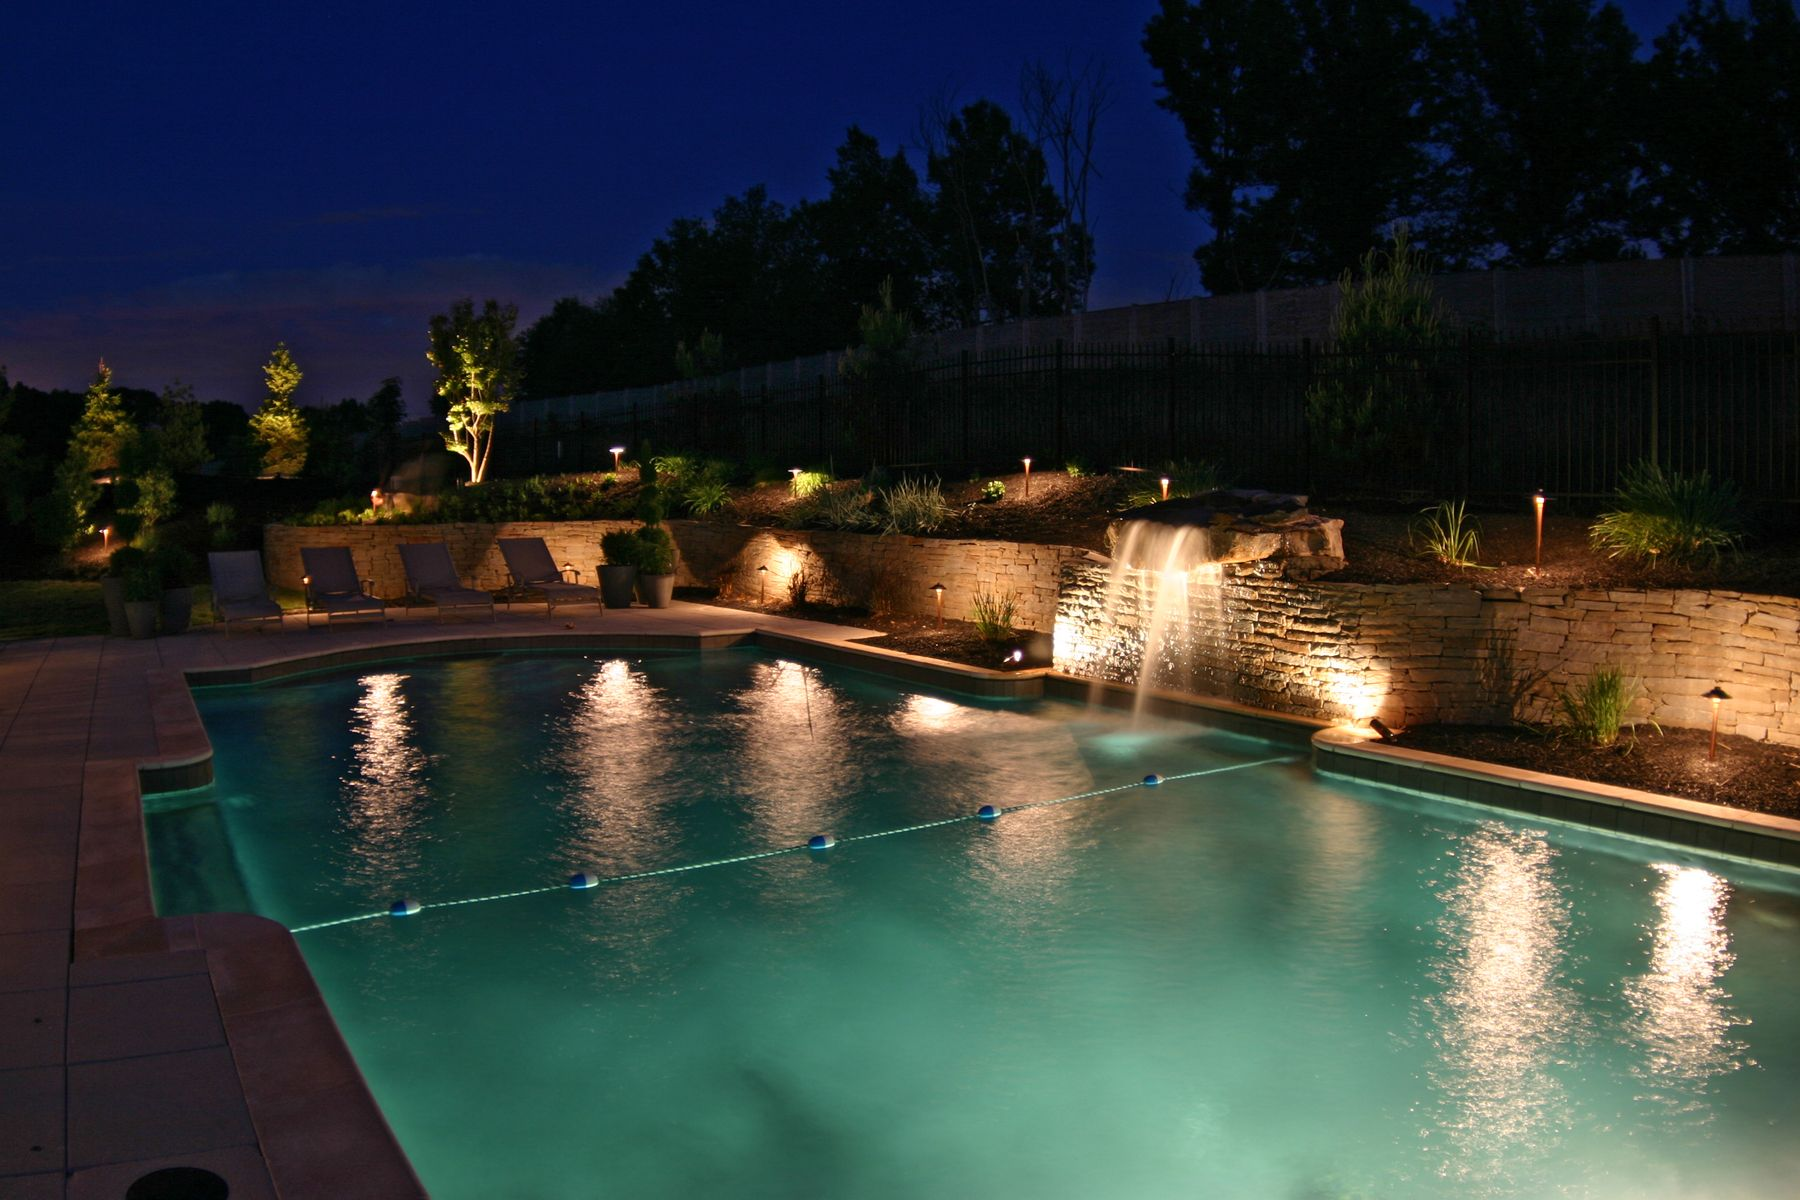 Outdoor lighting on in ground pool waterfall and stone wall pool light fixtures light light bulbs outdoor light amazing cleveland lap pool and rock underwater swimming pool lights above ground swimming pool lights arubaitofo Images